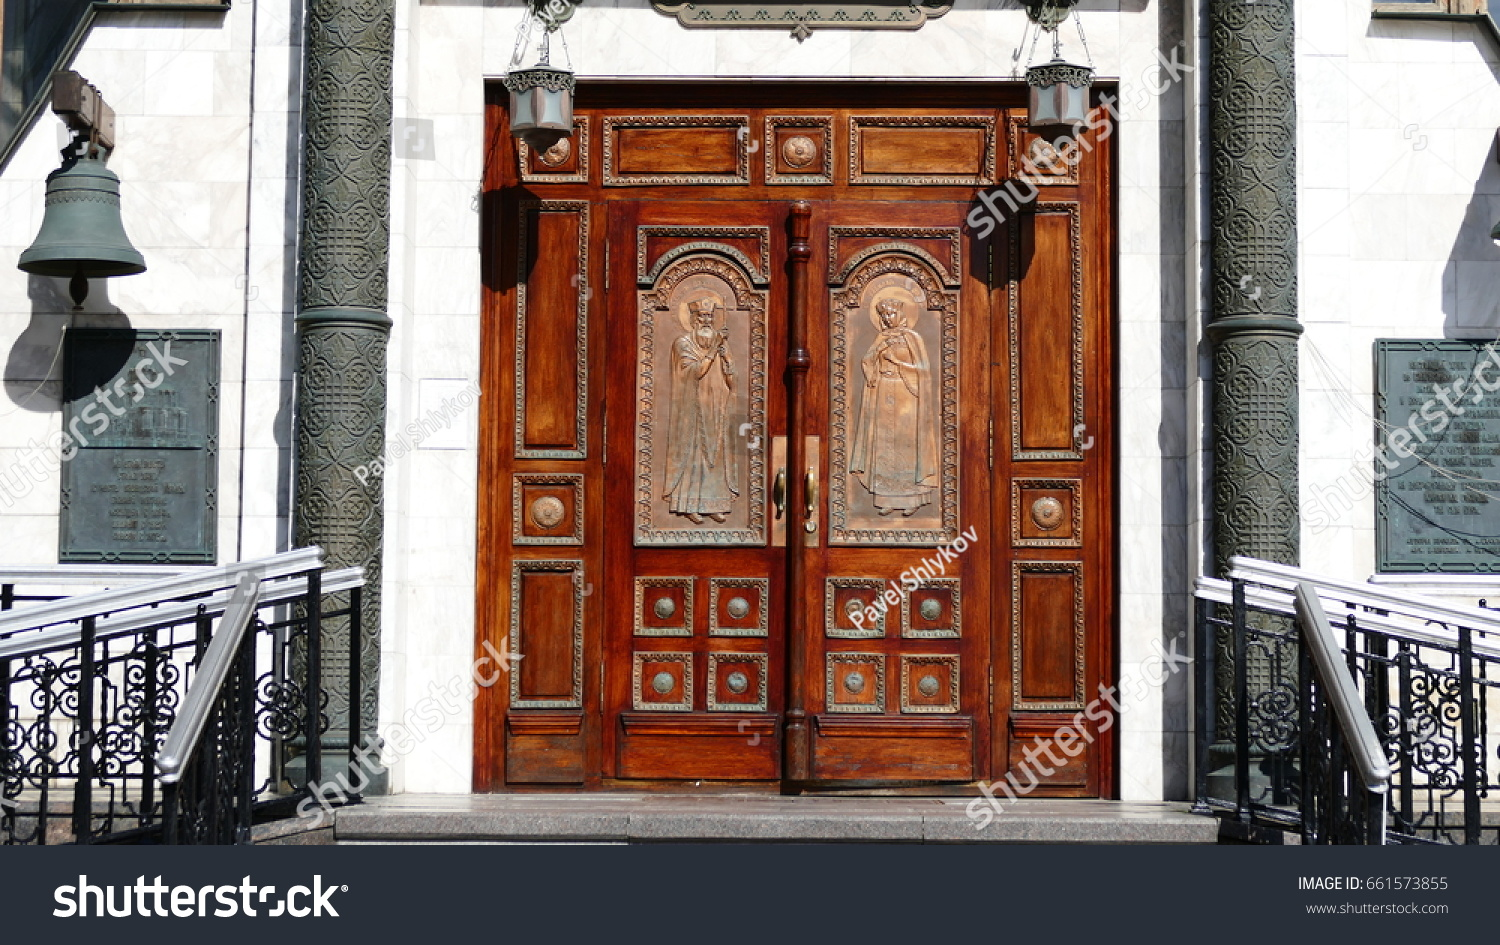 JUN 17 2017 MOSCOW RUSSIA Doors to the Church of the Kazan Icon & Jun 17 2017 Moscow Russia Doors Stock Photo 661573855 - Shutterstock